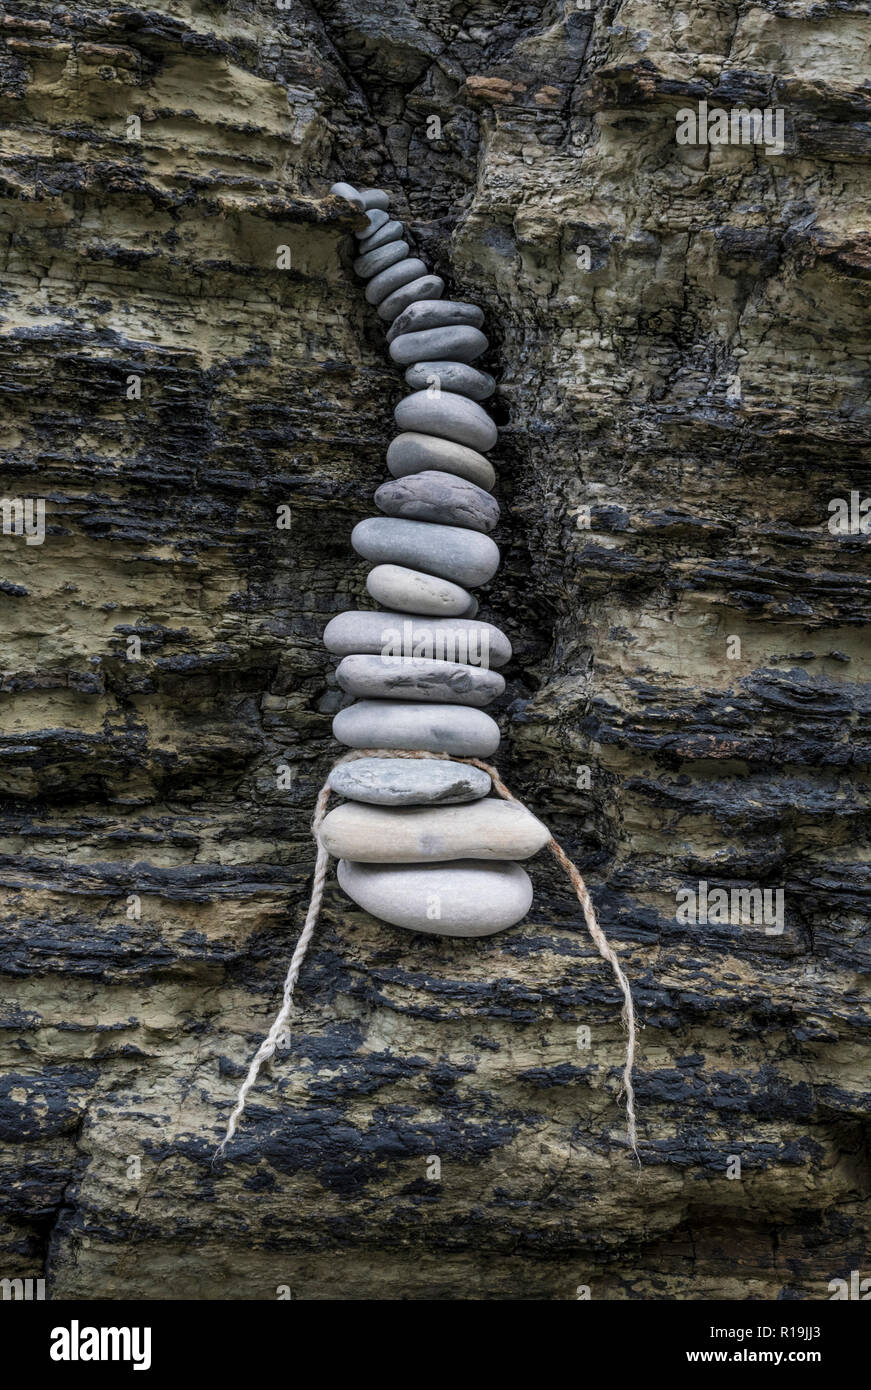 Zen inspired stone stacking in crevice, Birsay, Orkney - Stock Image